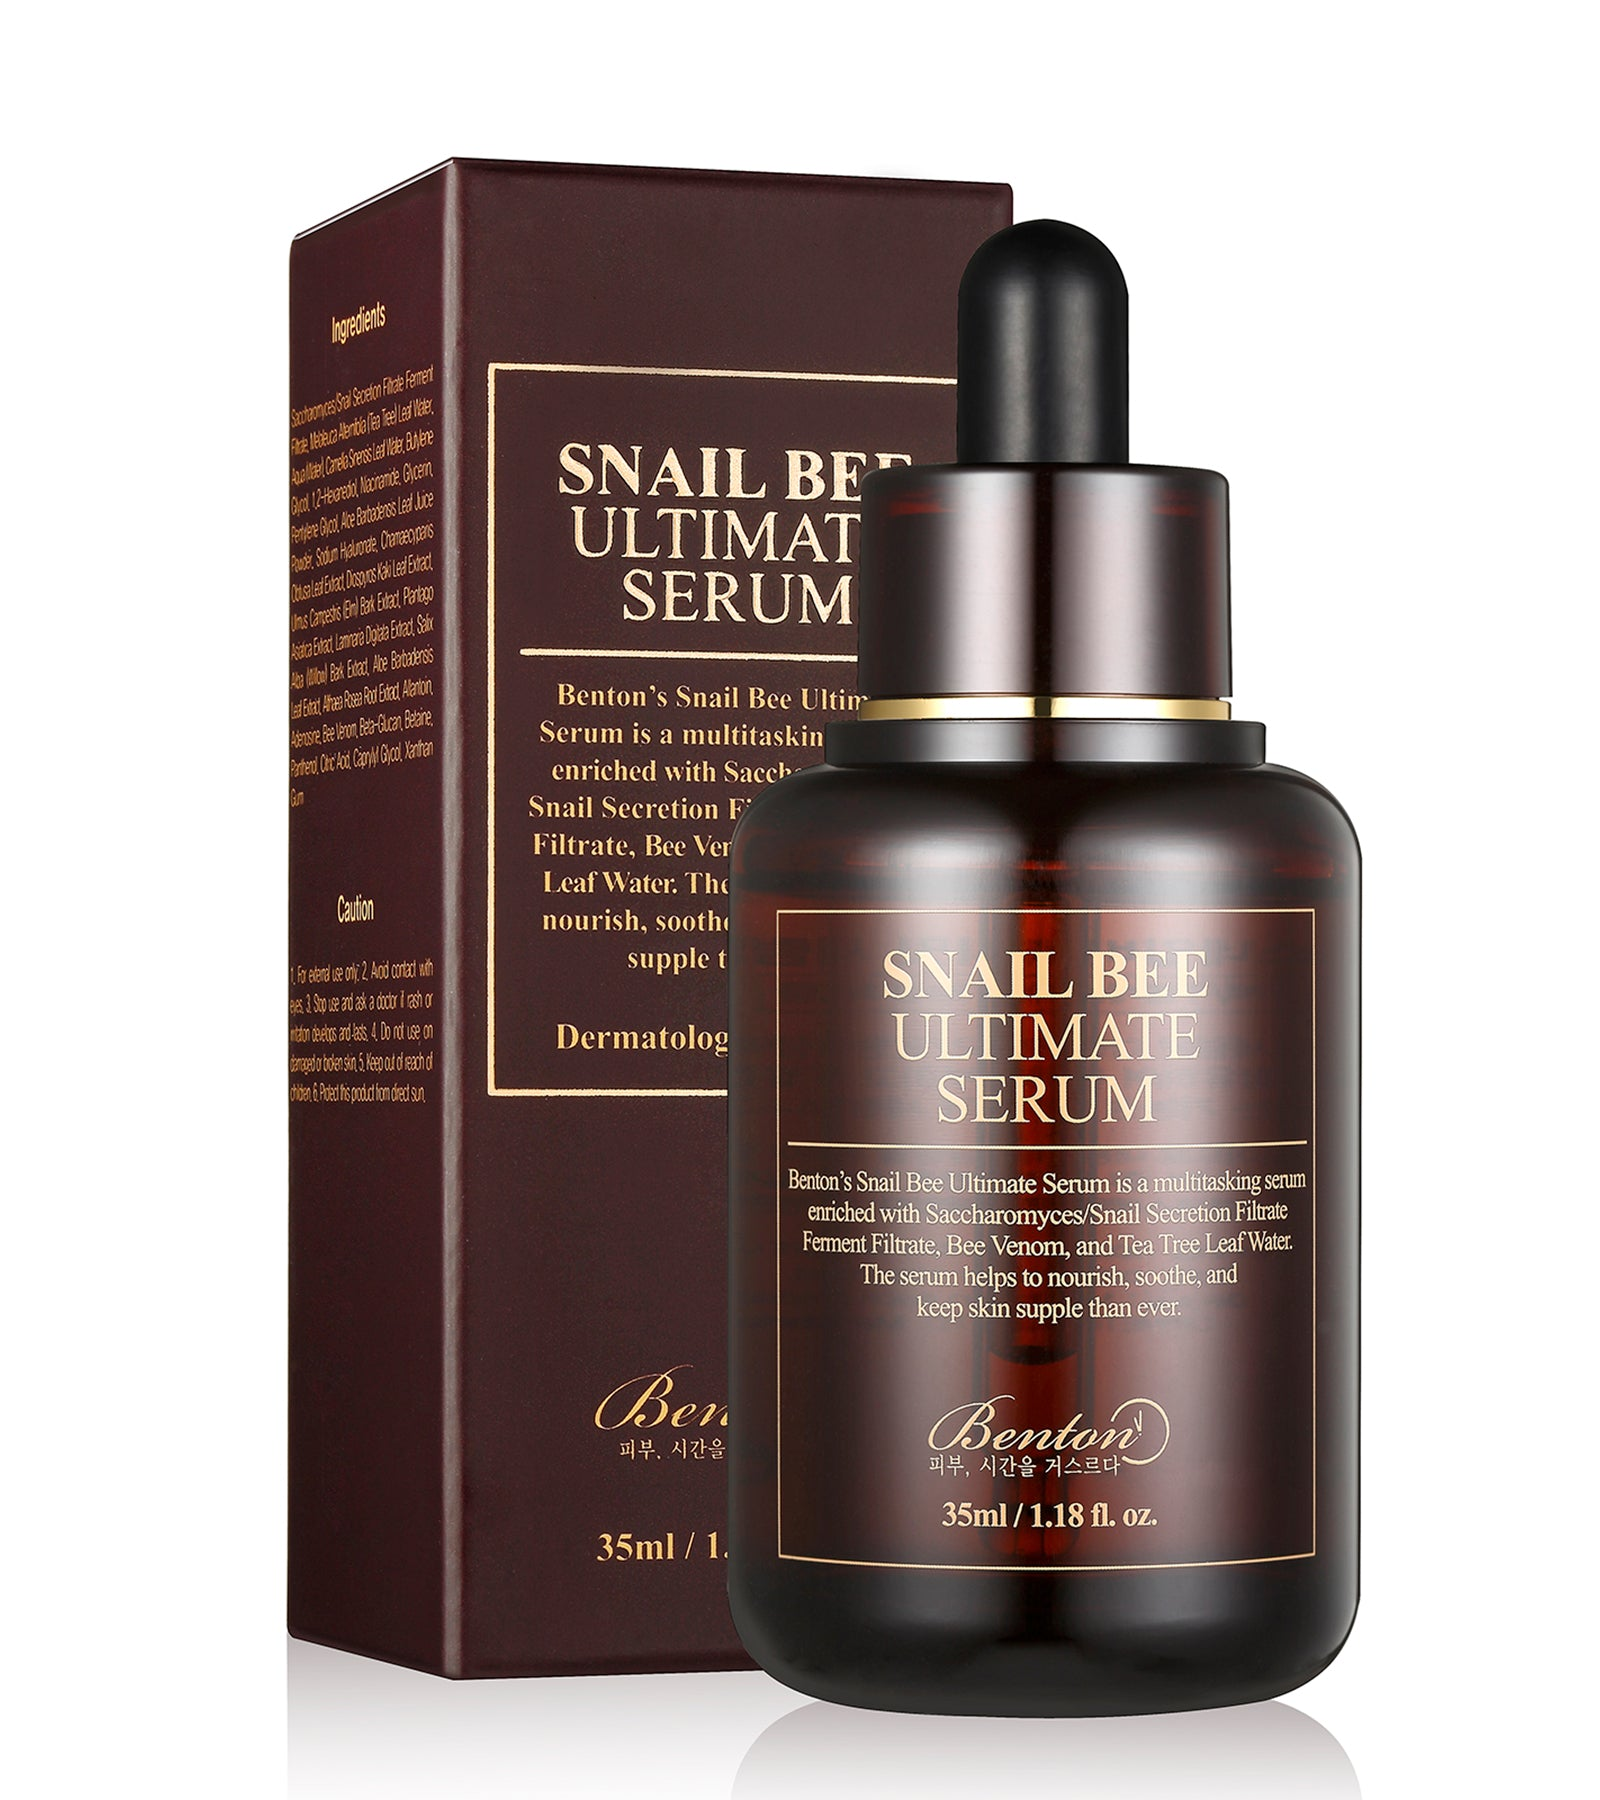 Snail Bee Ultimate Serum - 35ml